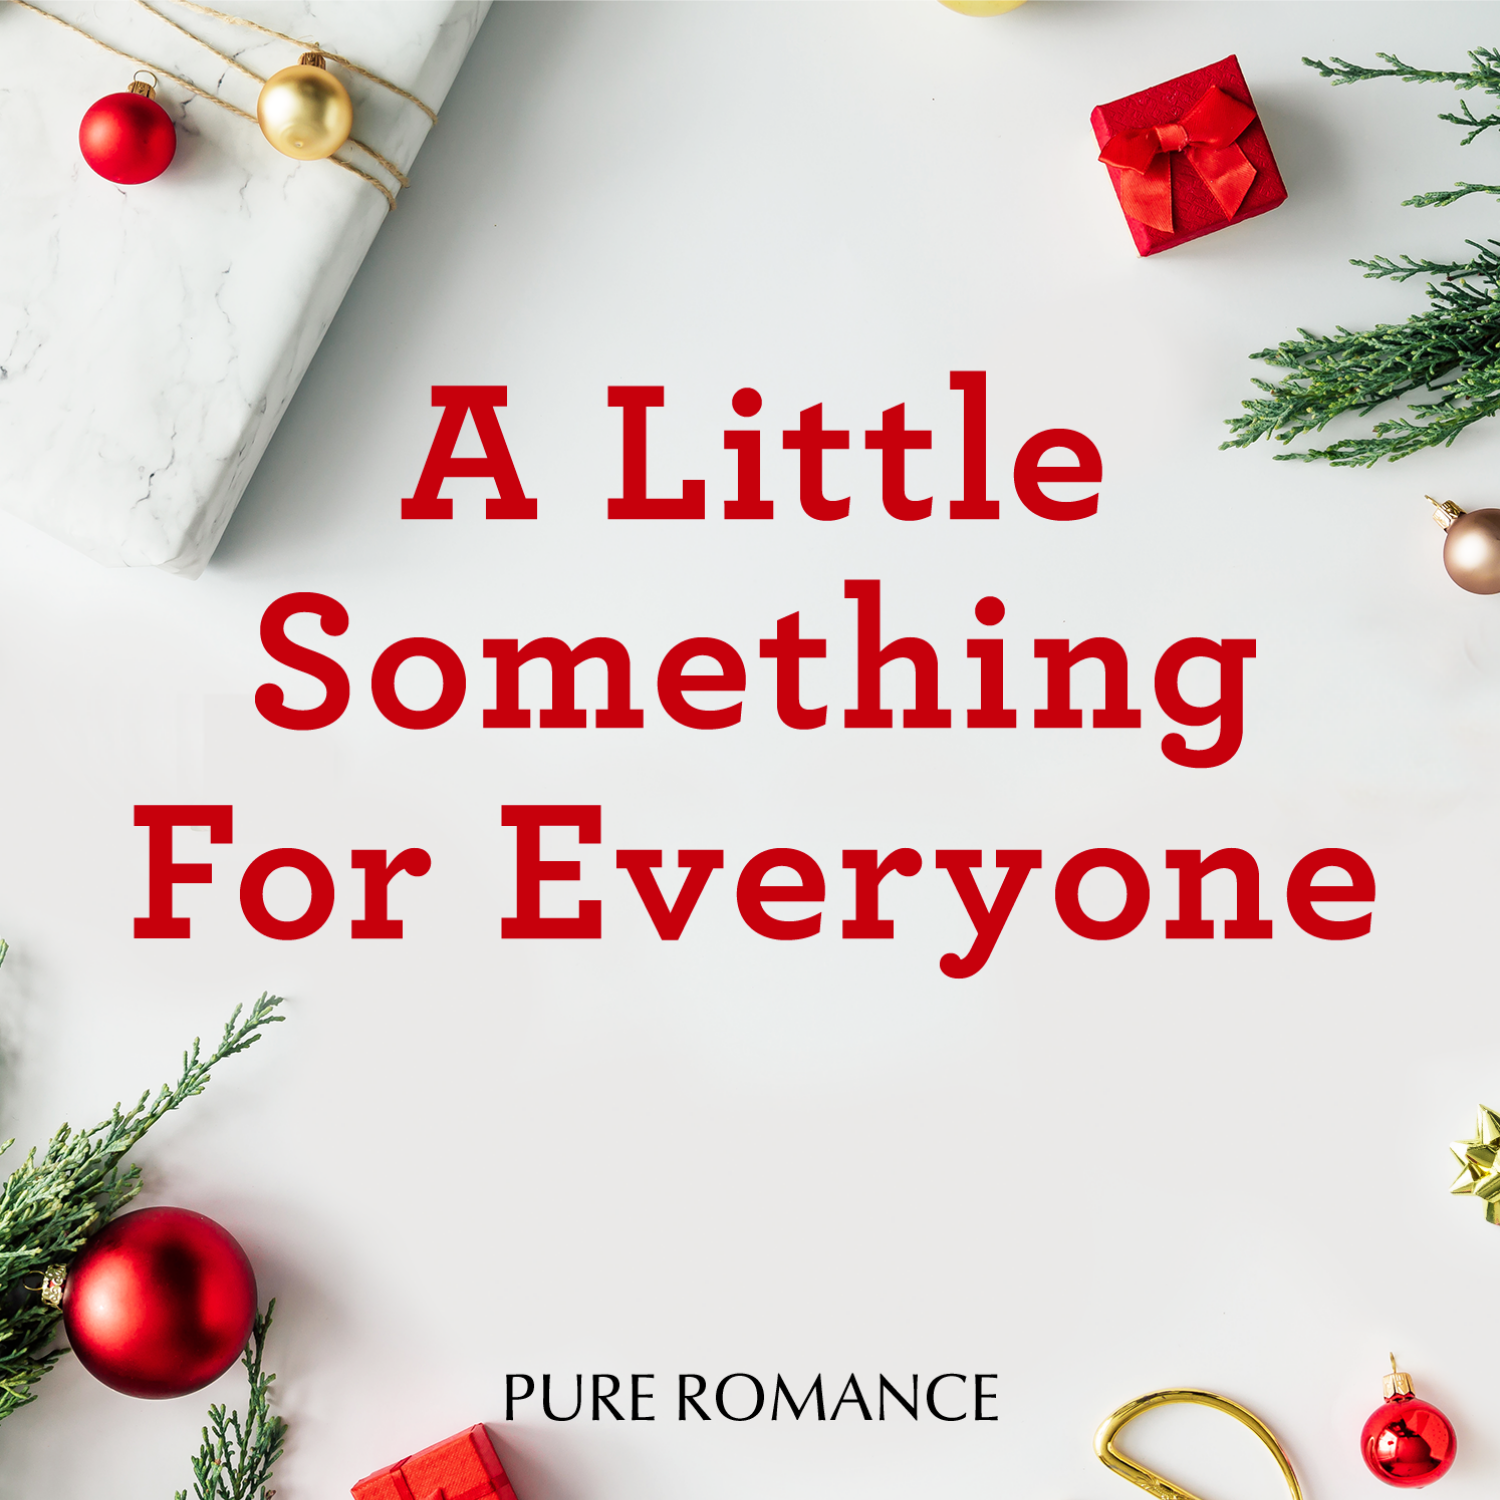 Pure Romance by Ferlicia Thompson